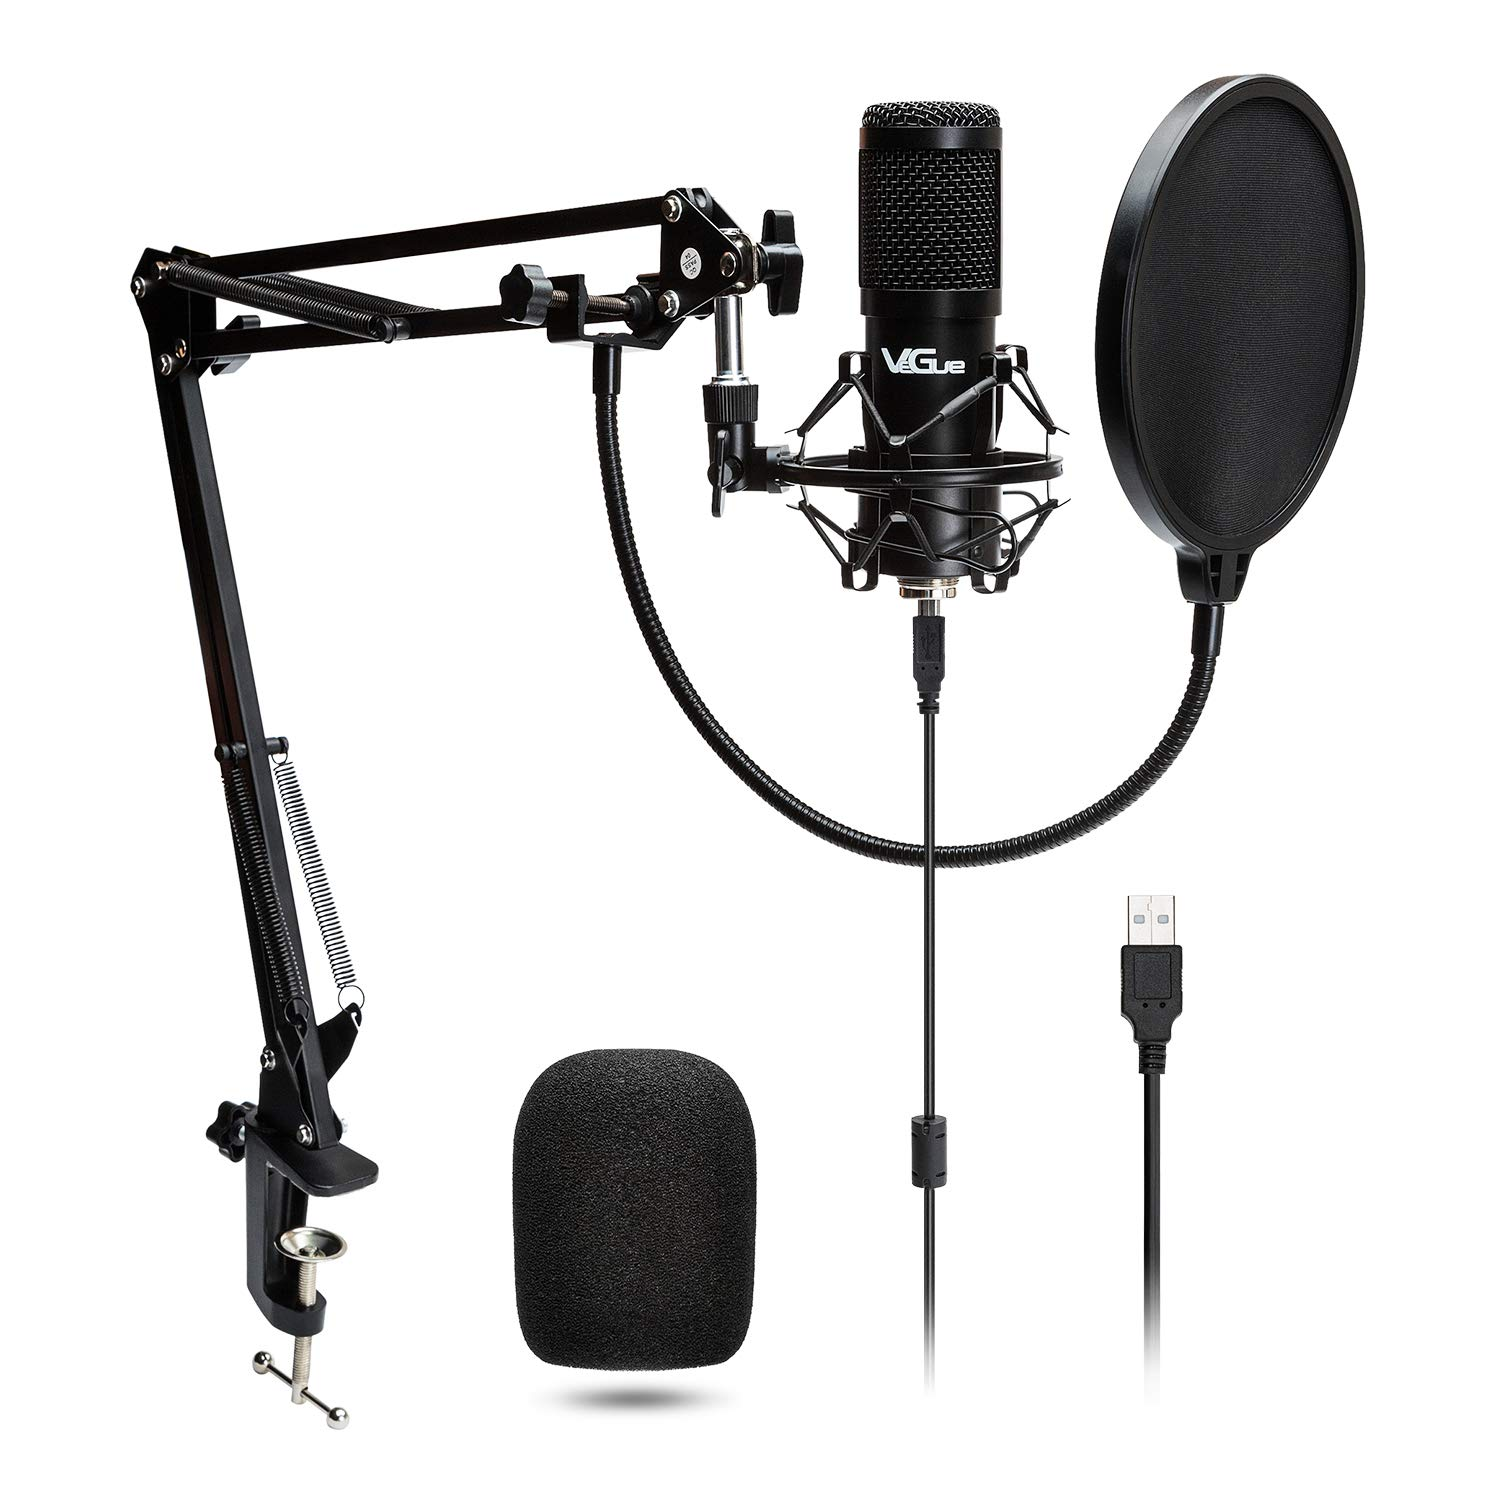 USB Microphone Kit, Professional Computer PC Mic for Gaming, Podcast, Live Streaming, YouTube Recording, Studio Mic Bundle with Adjustment Arm Stand VG-016